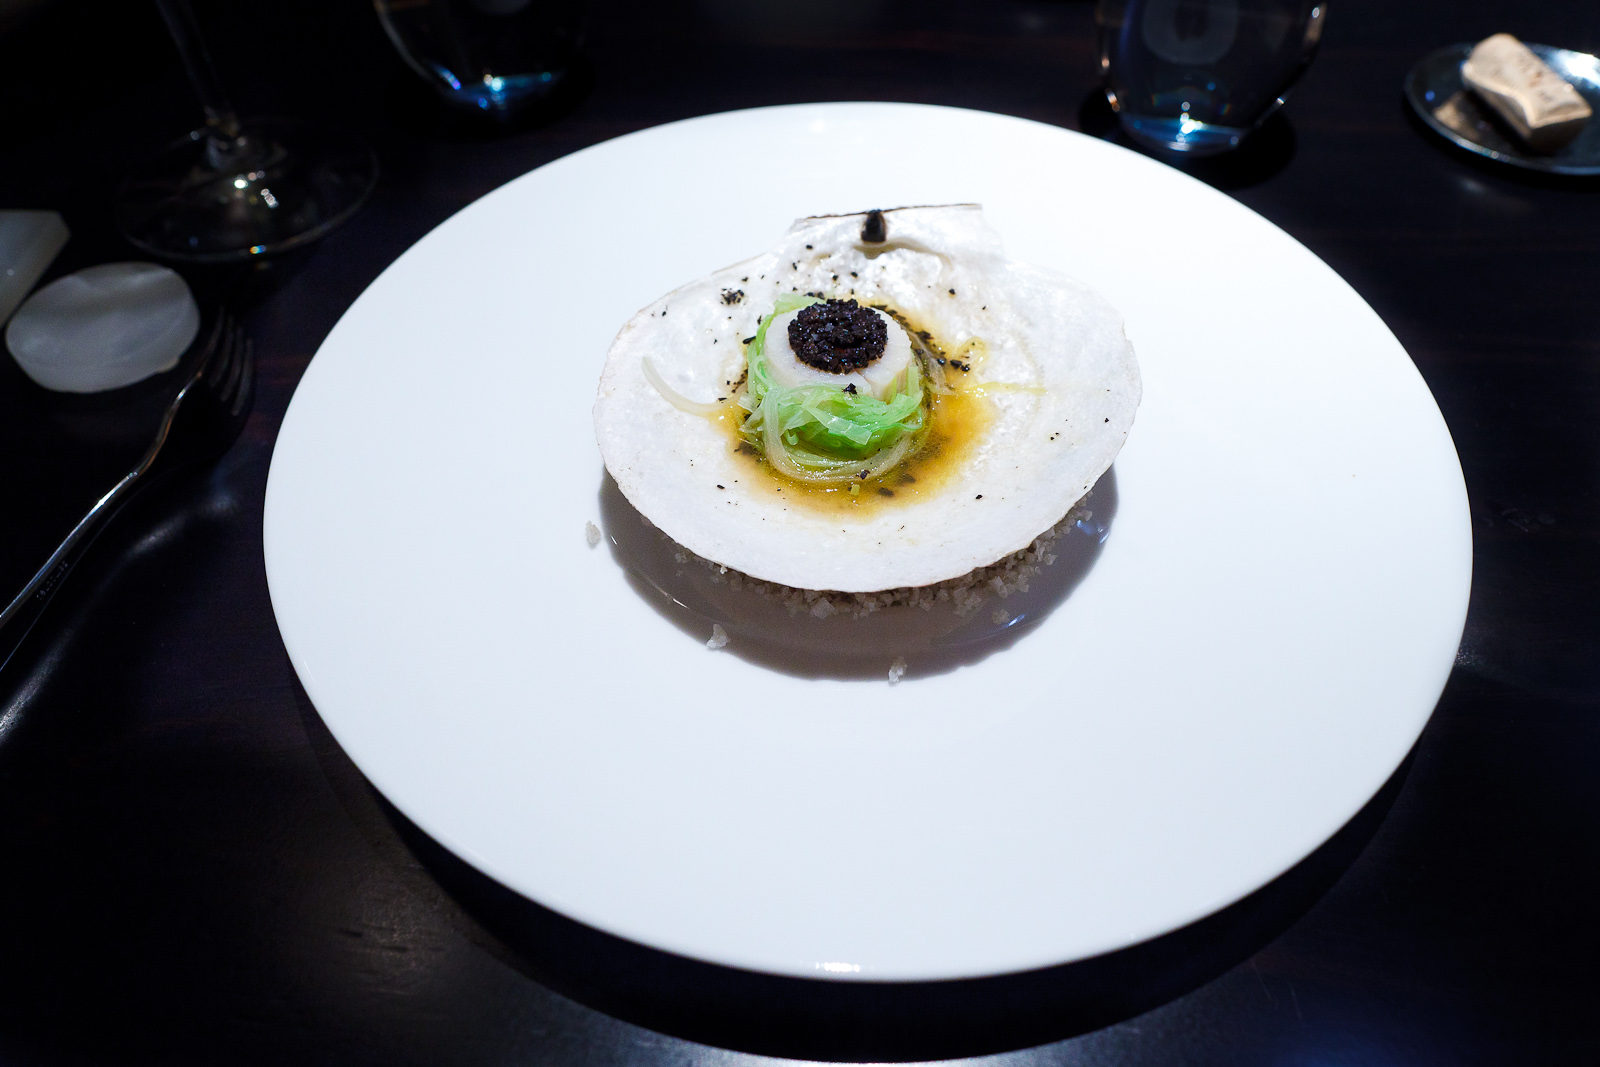 2nd Course: Hand harvested Maine scallop cooked in the shell, leeks, black truffle